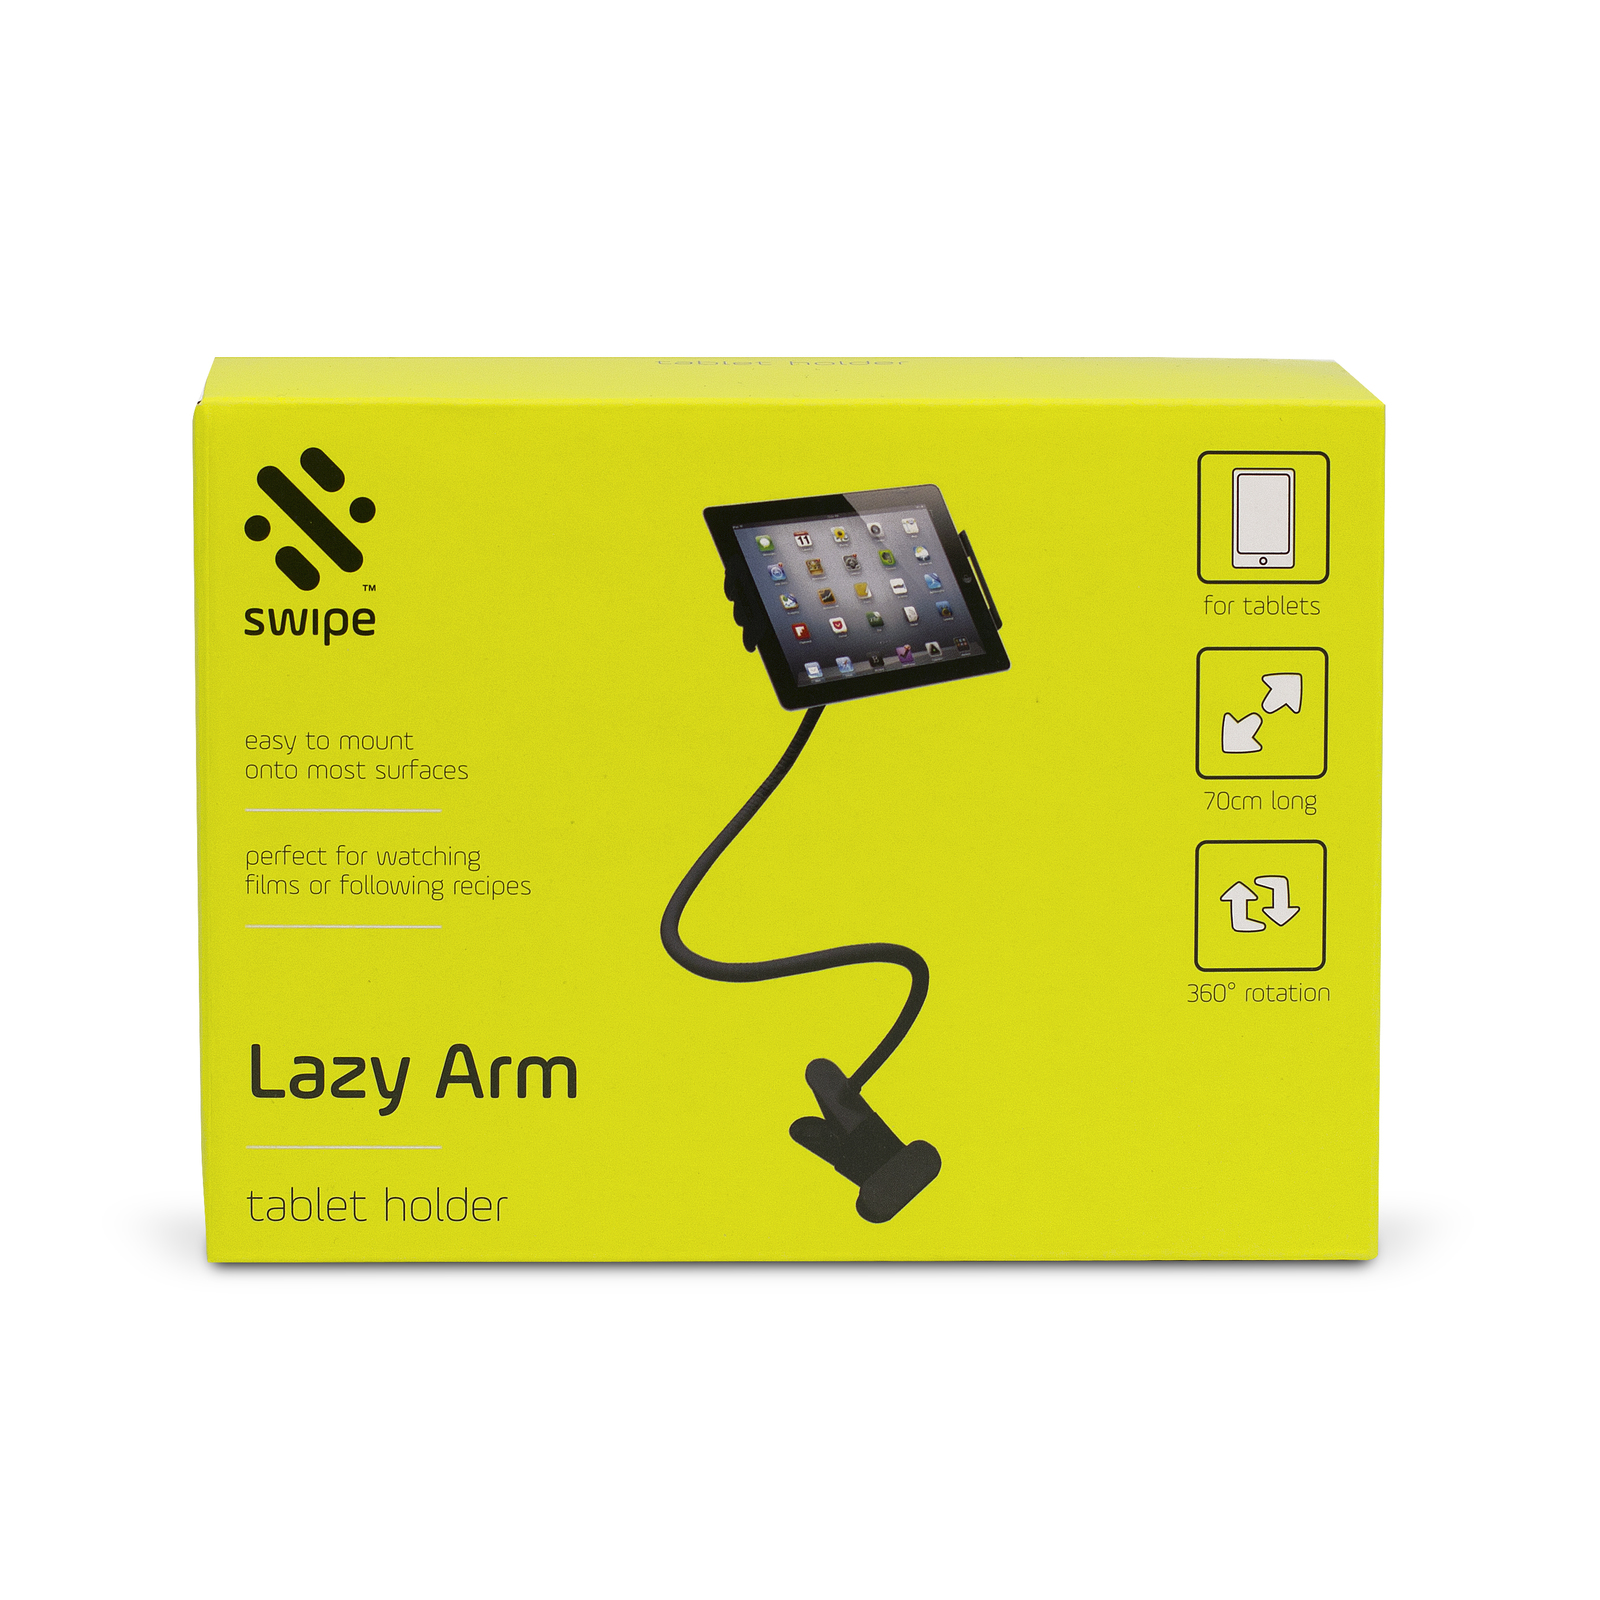 Lazy Arm Tablet Version image